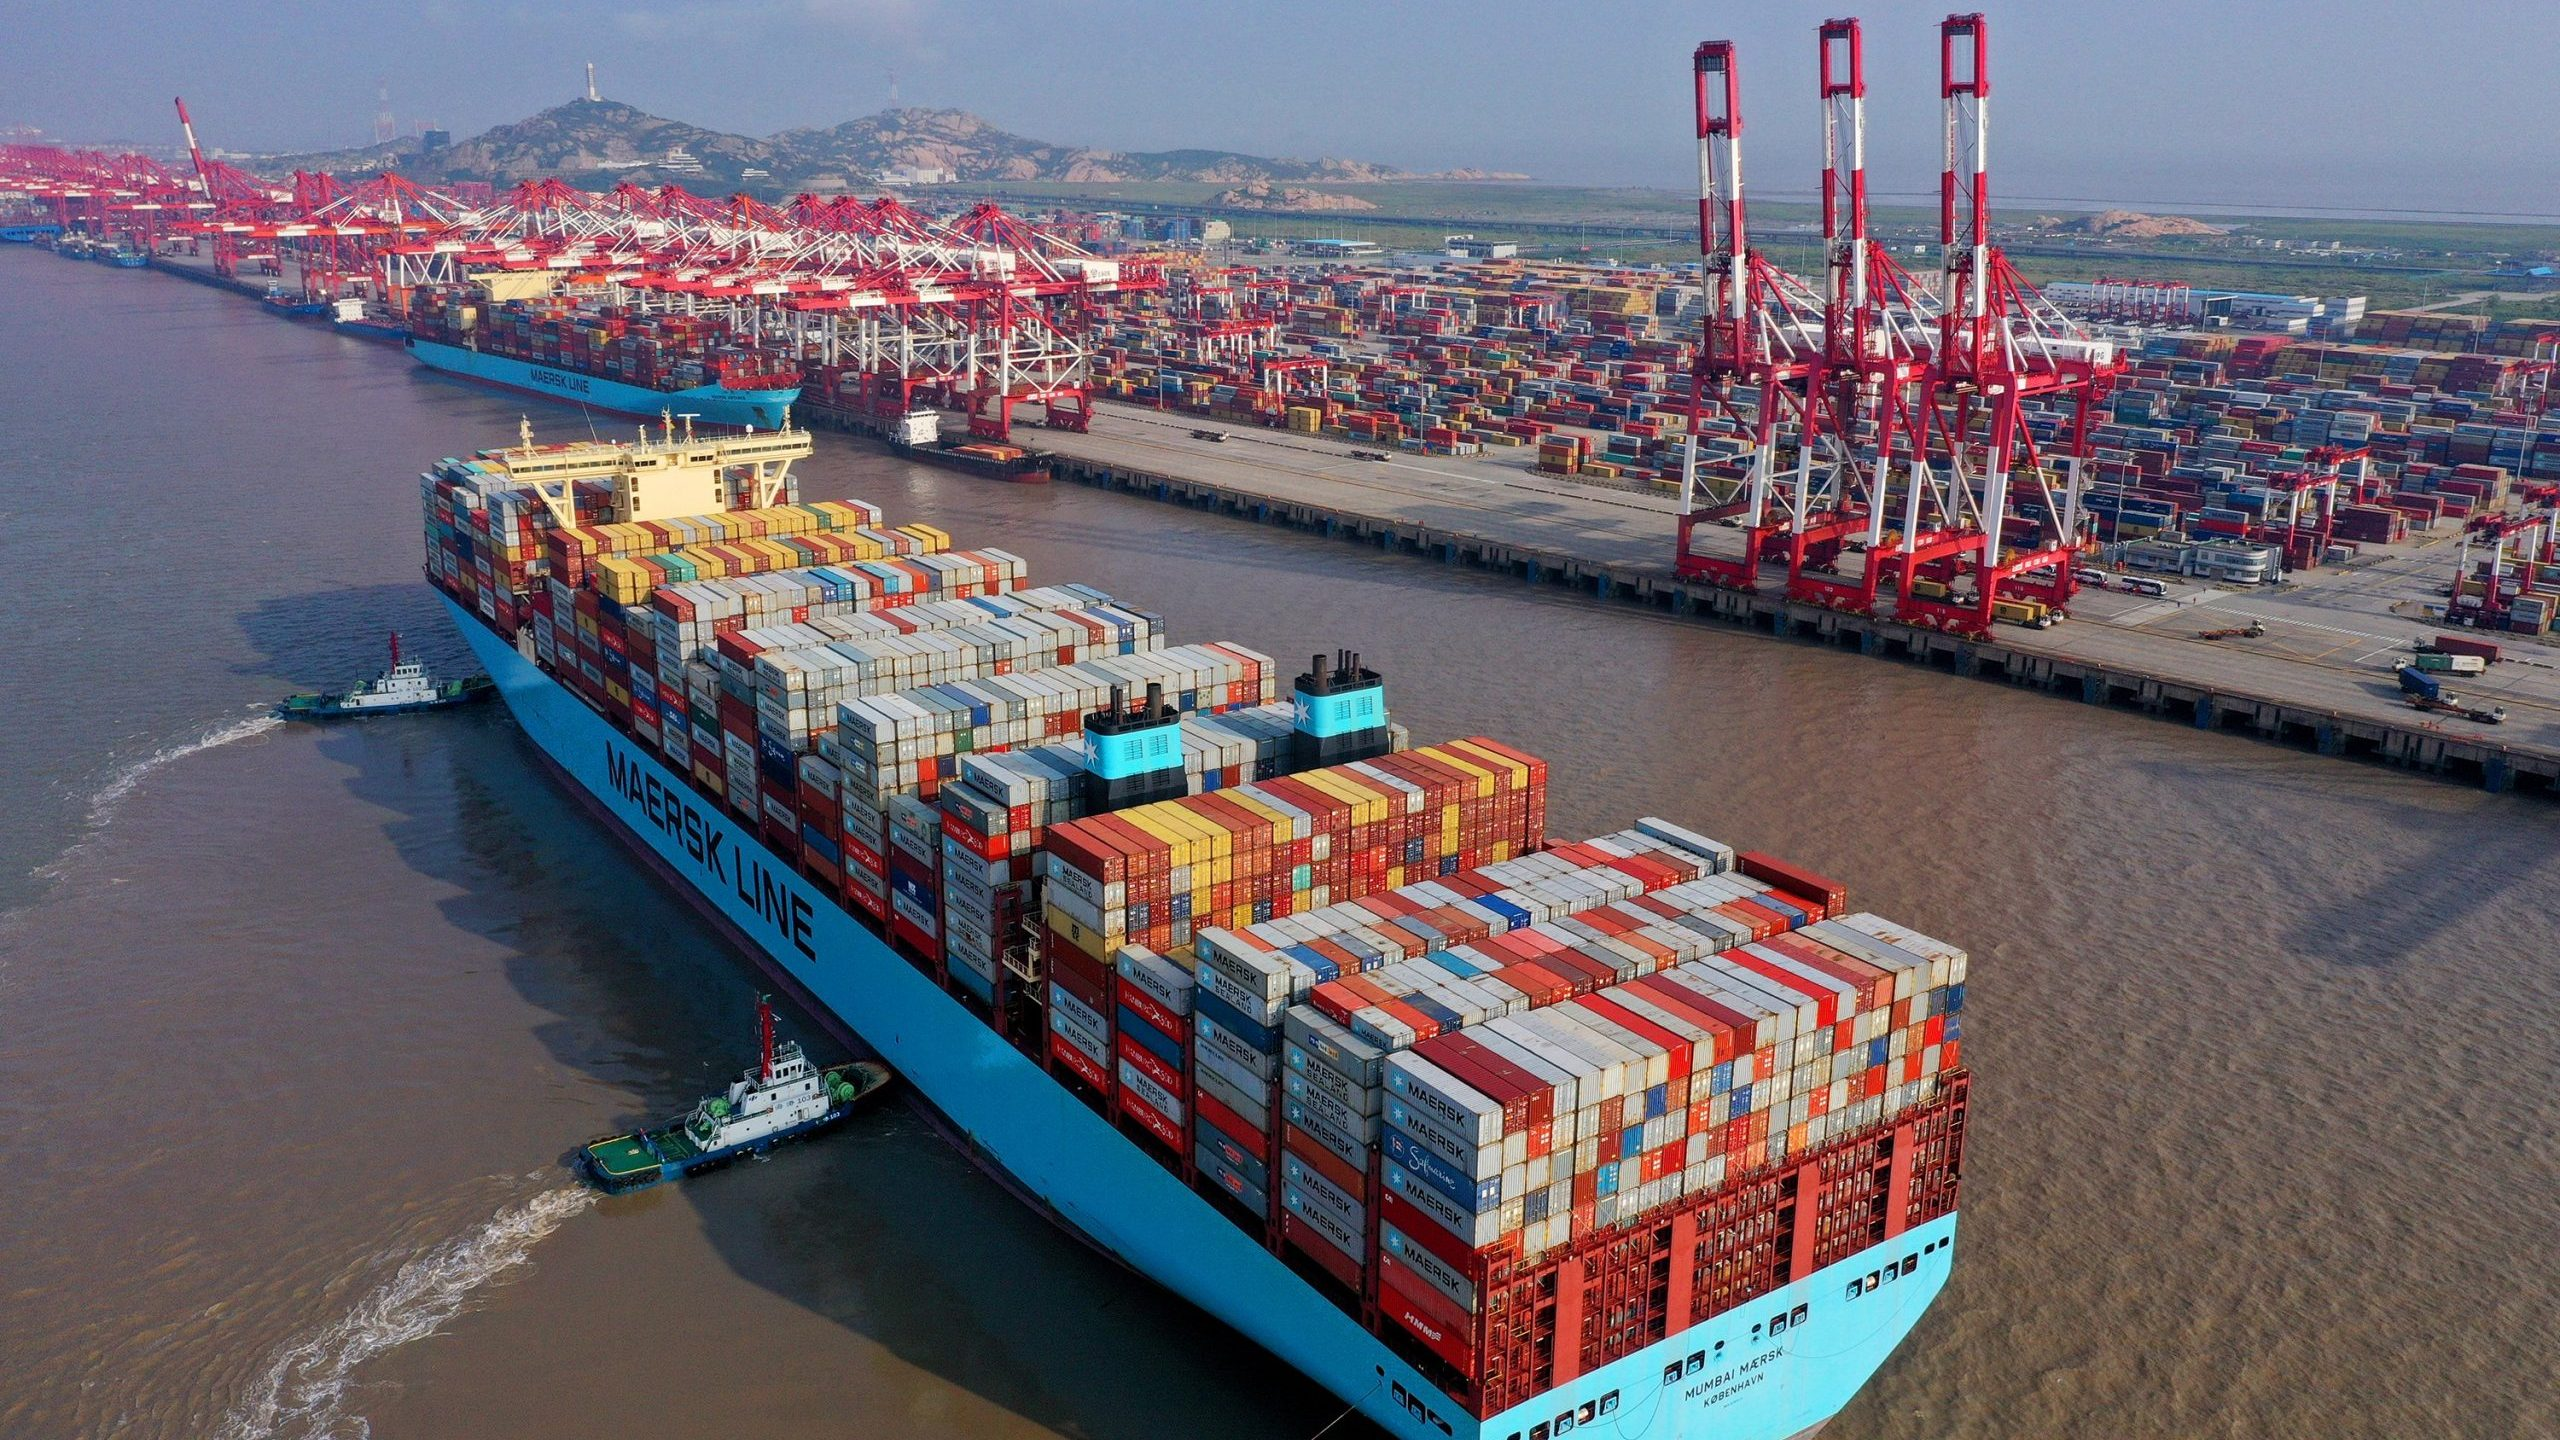 Tugboats guide a container ship at the Yangshan Deepwater Port on Oct. 4, 2019 in Shanghai, China. (Credit: Ji Haixin/VCG via Getty Images)